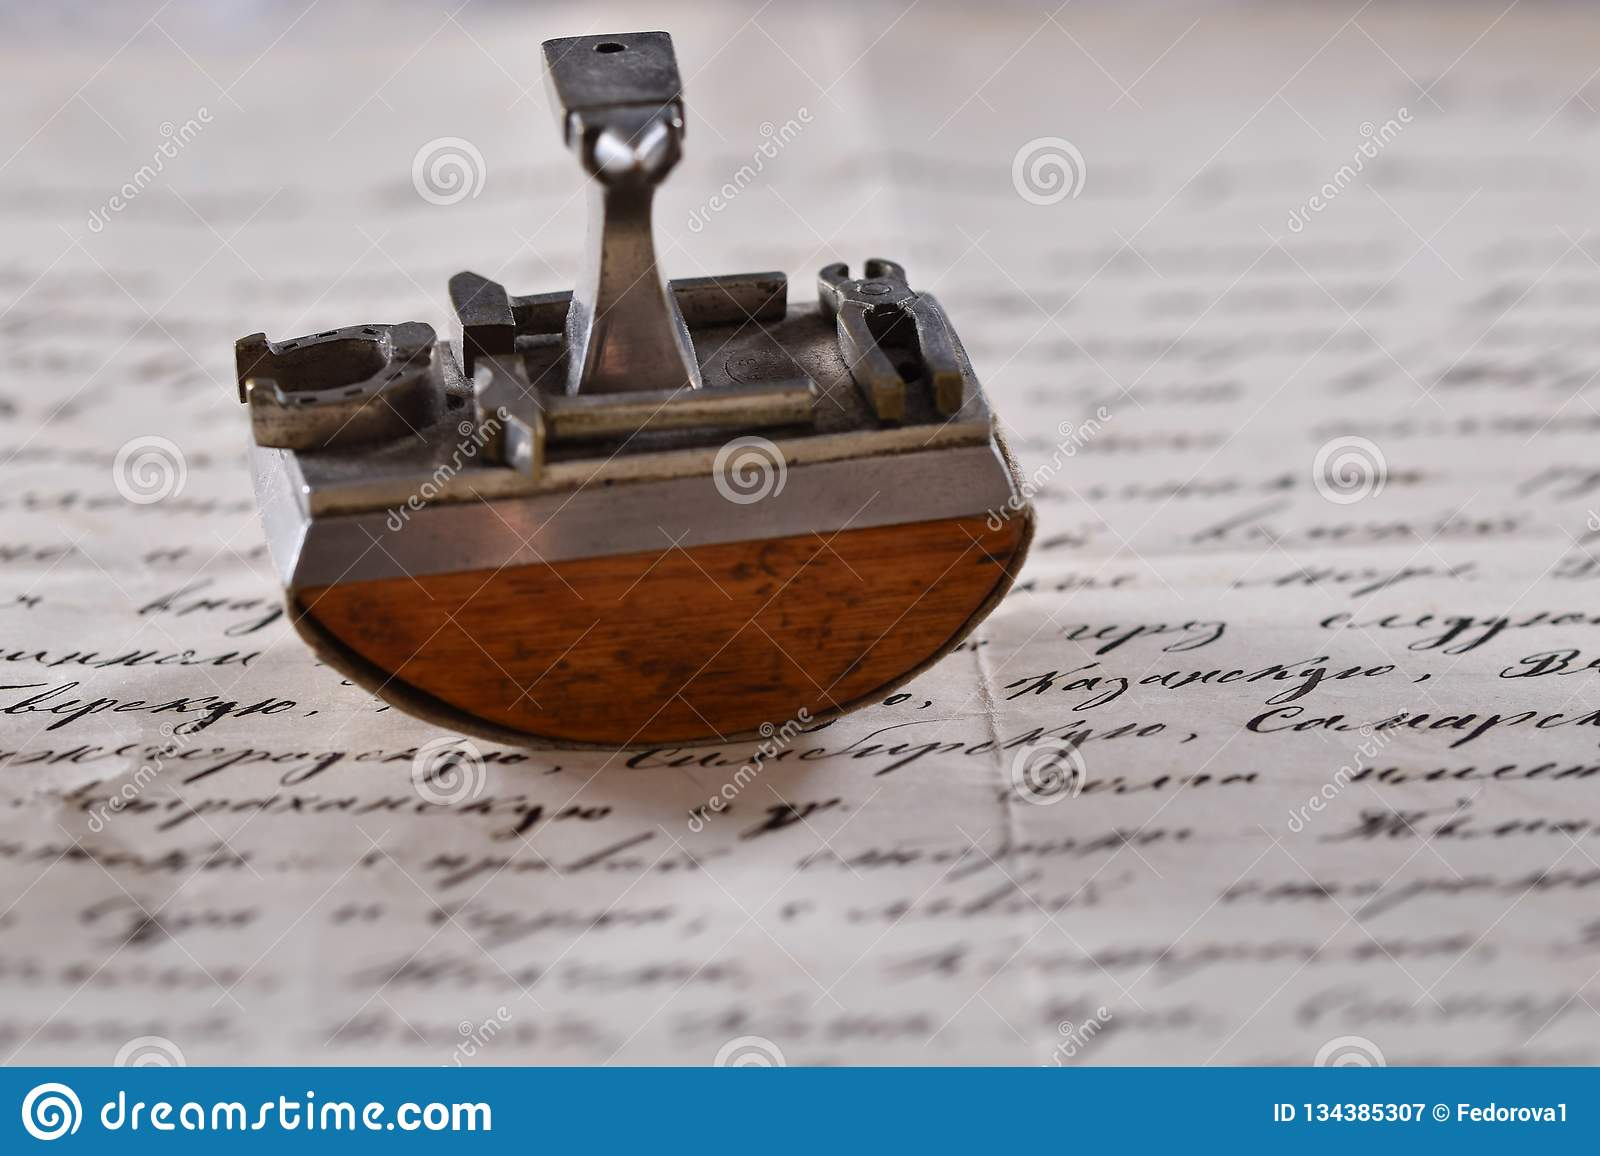 Vintage paperweight on the love letter